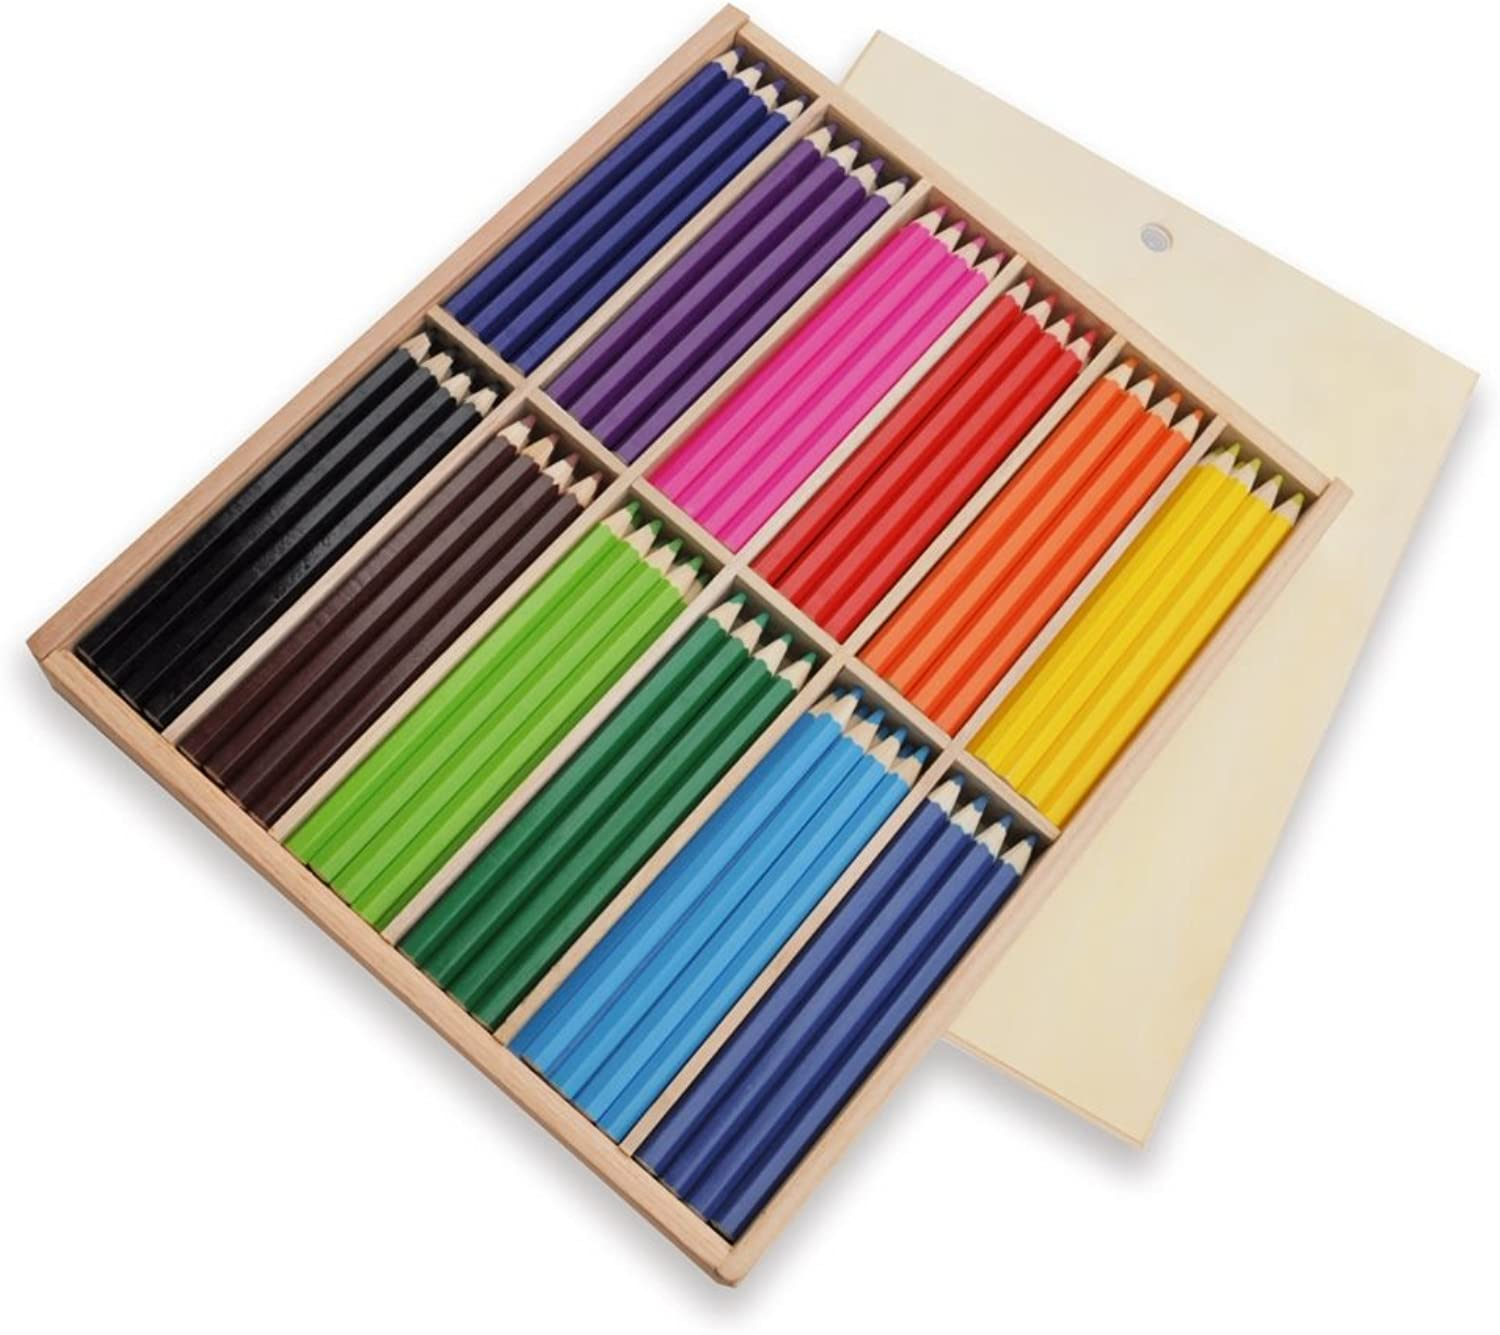 Playbox PBX2470381 2470381 Pencils, Set of 144 Pieces Big, 12 colors, Multi